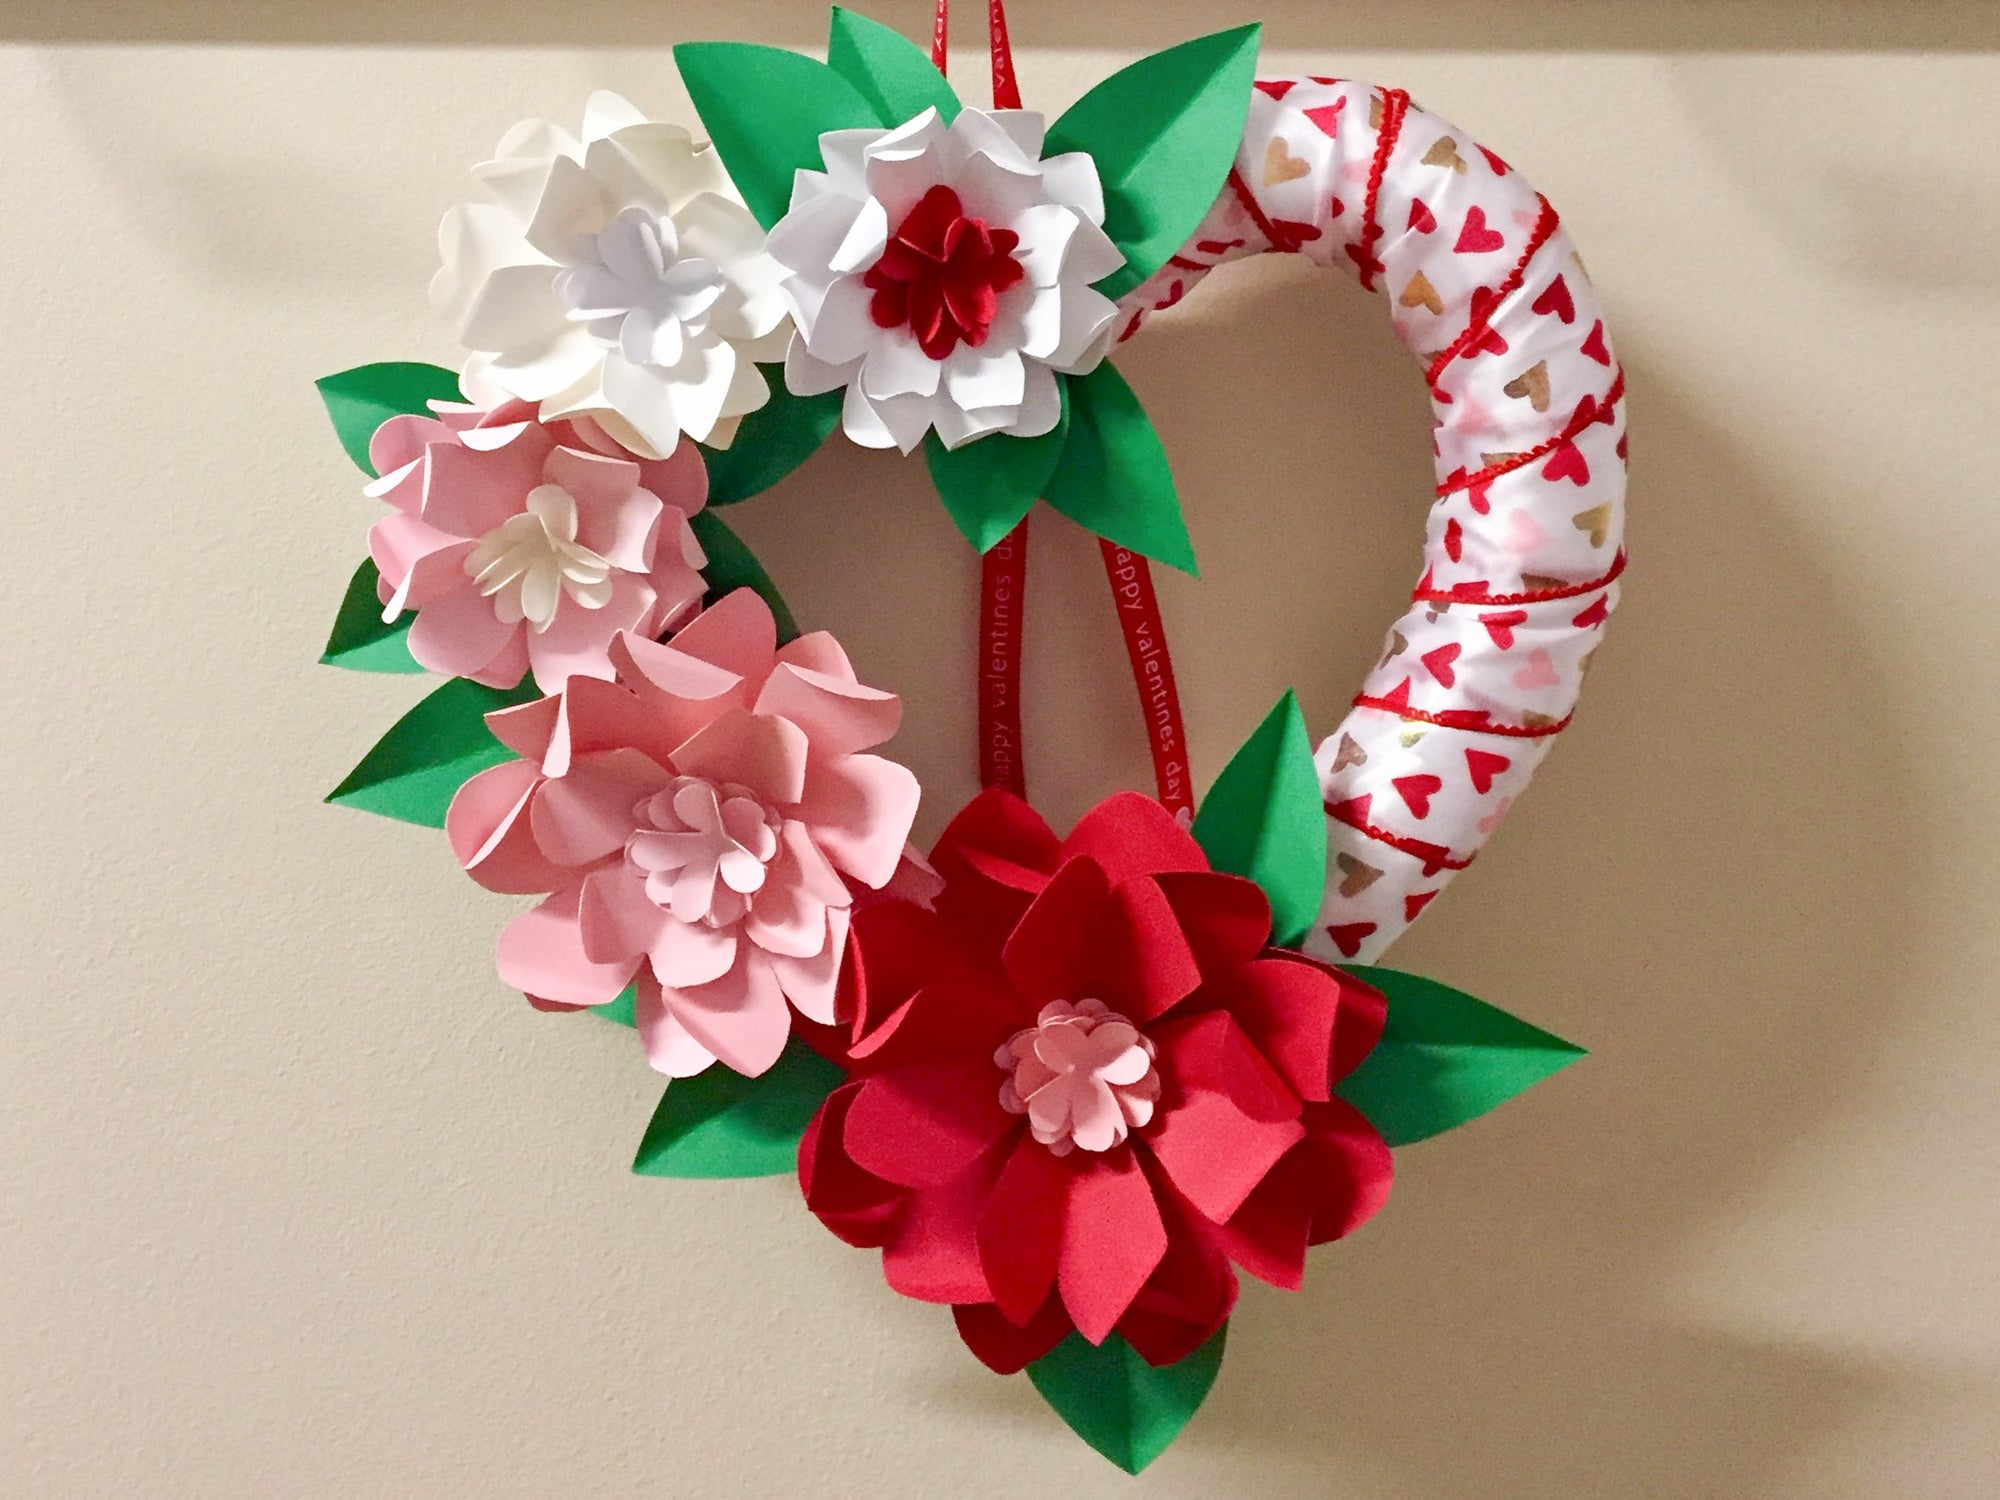 DIY Valentine's Day Wreath with Paper Flowers